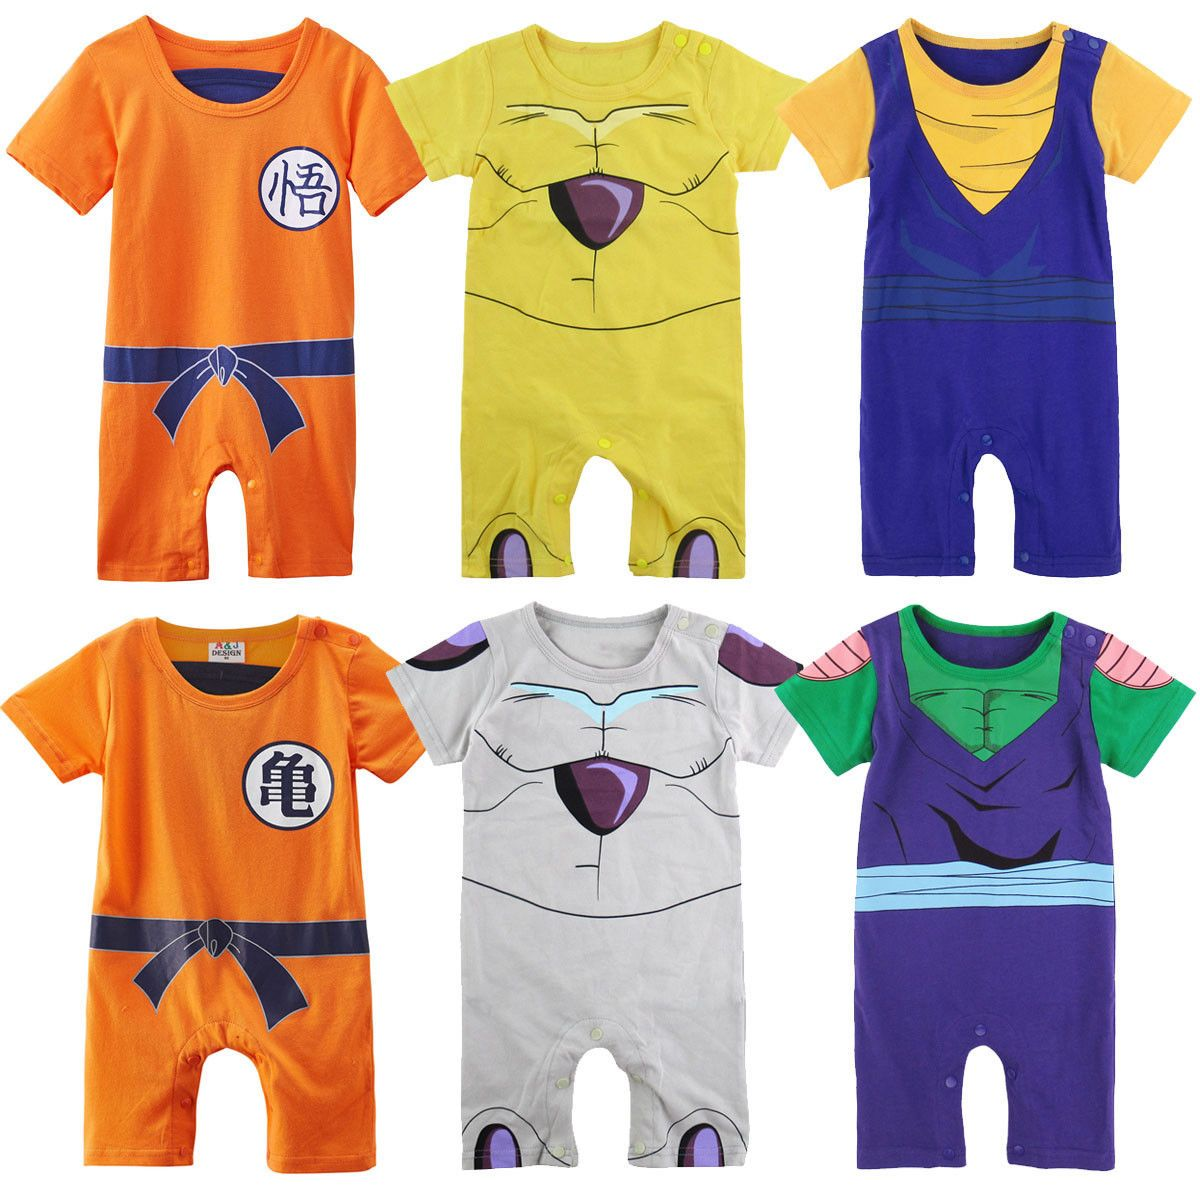 Baby Boy Dragon Ball Costume Romper Newborn Outfit Infant Playsuit Jumpsuit Set